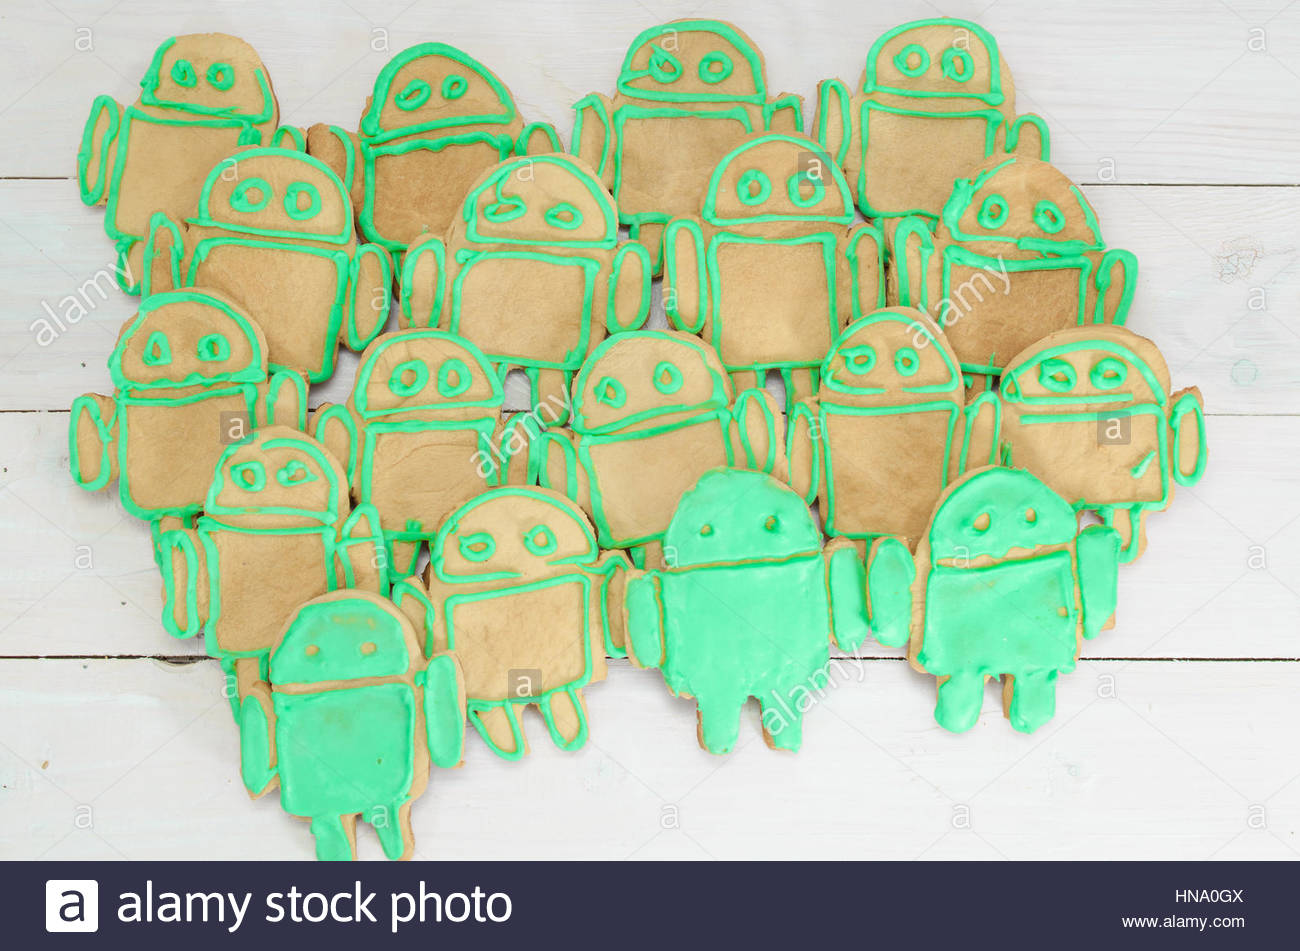 Android gingerbread on white background - Stock Image